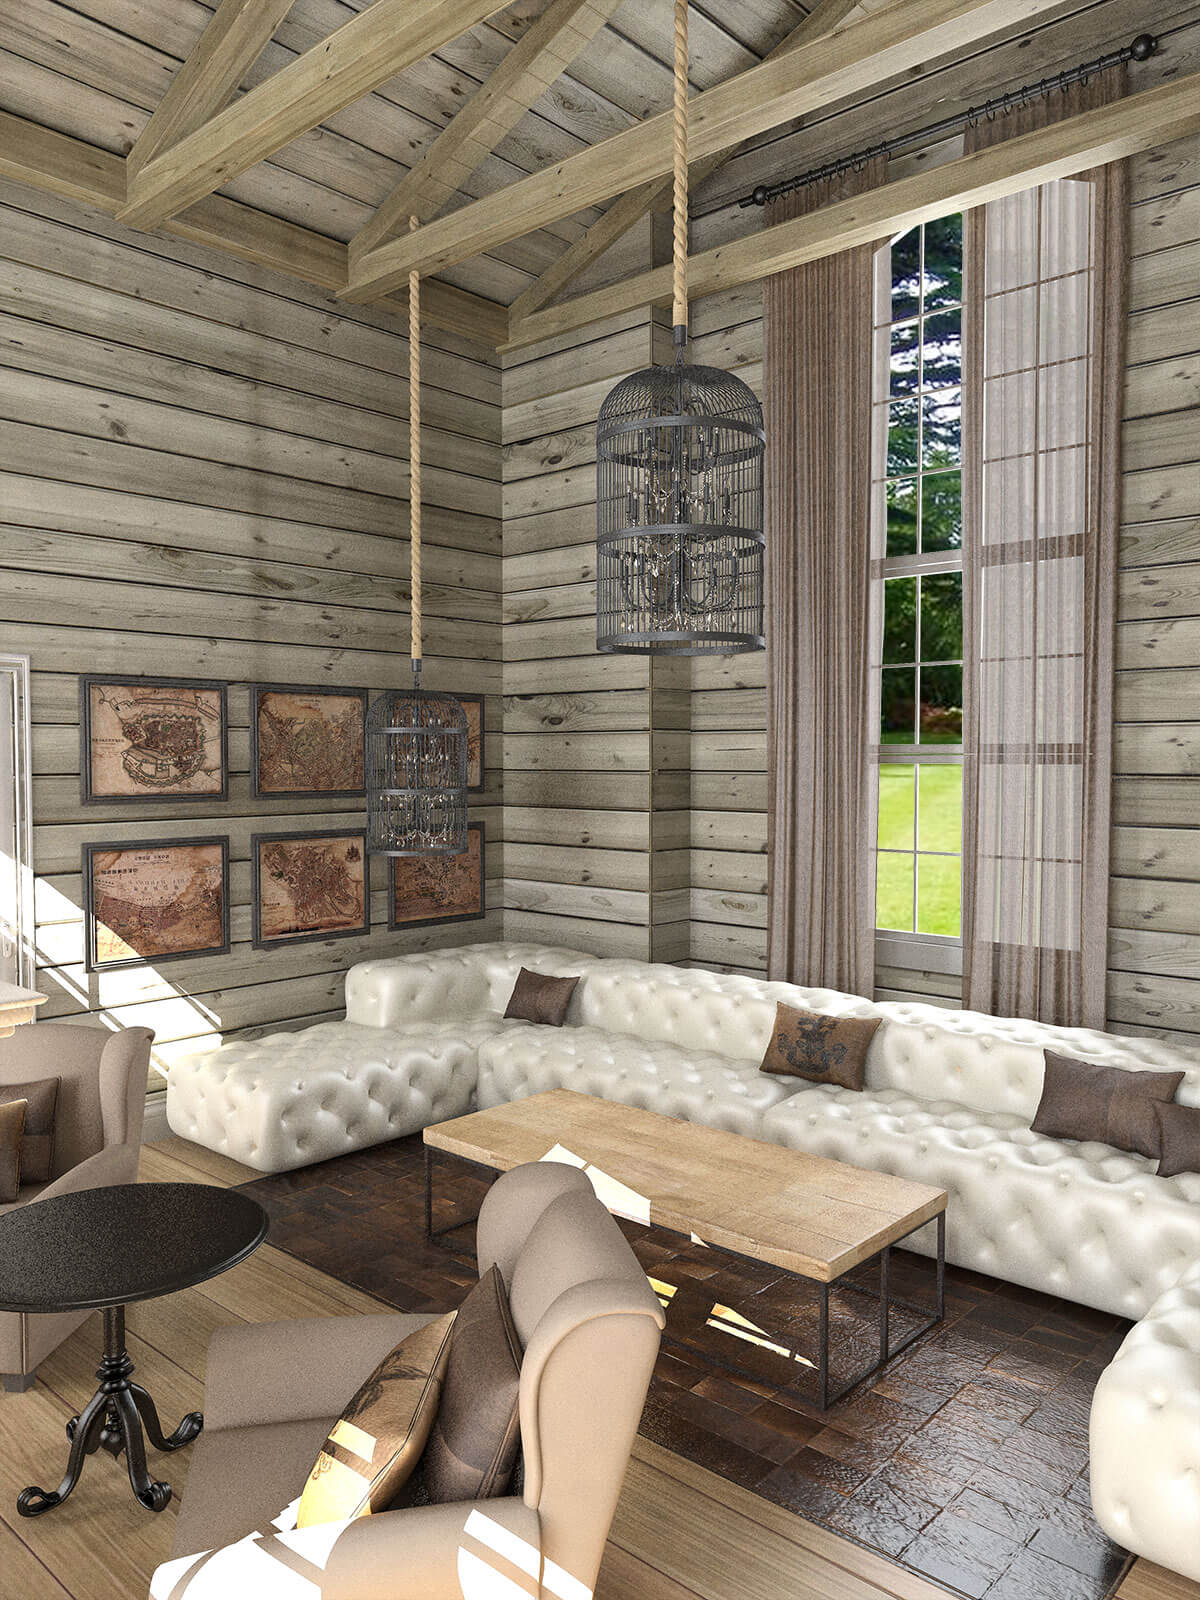 3D  visualisation of the front room in a style of log cabin, London, UK.